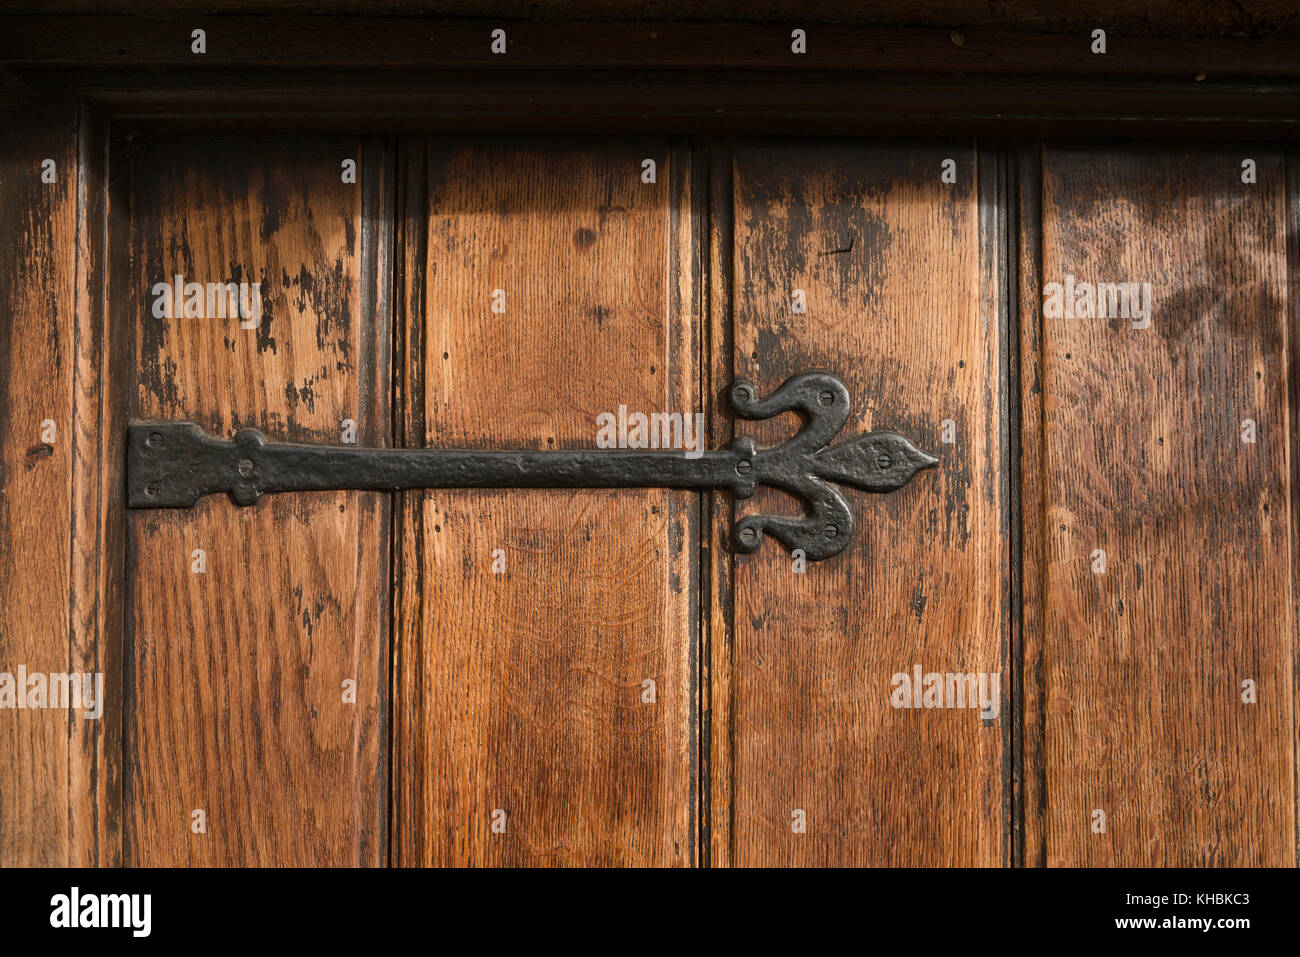 A substantial black cast iron, ornate, antique hinge fitted to an aged, tongue & groove oak front door. - Stock Image